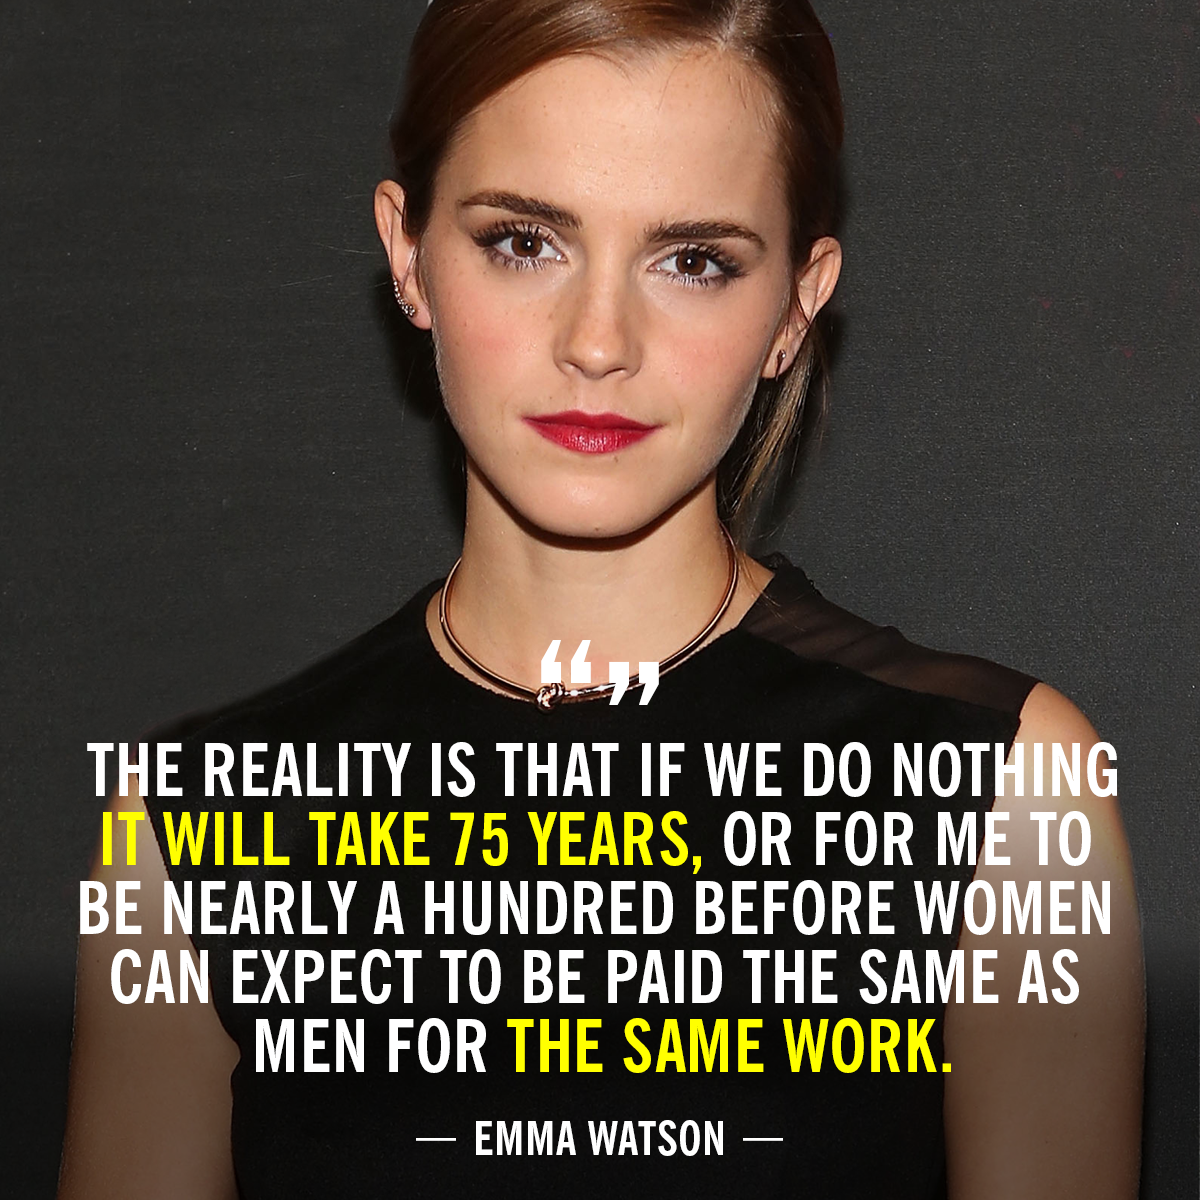 28 A List Women Campaigning For Equal Pay Feminist Quotes Successful Women Quotes Womens Equality